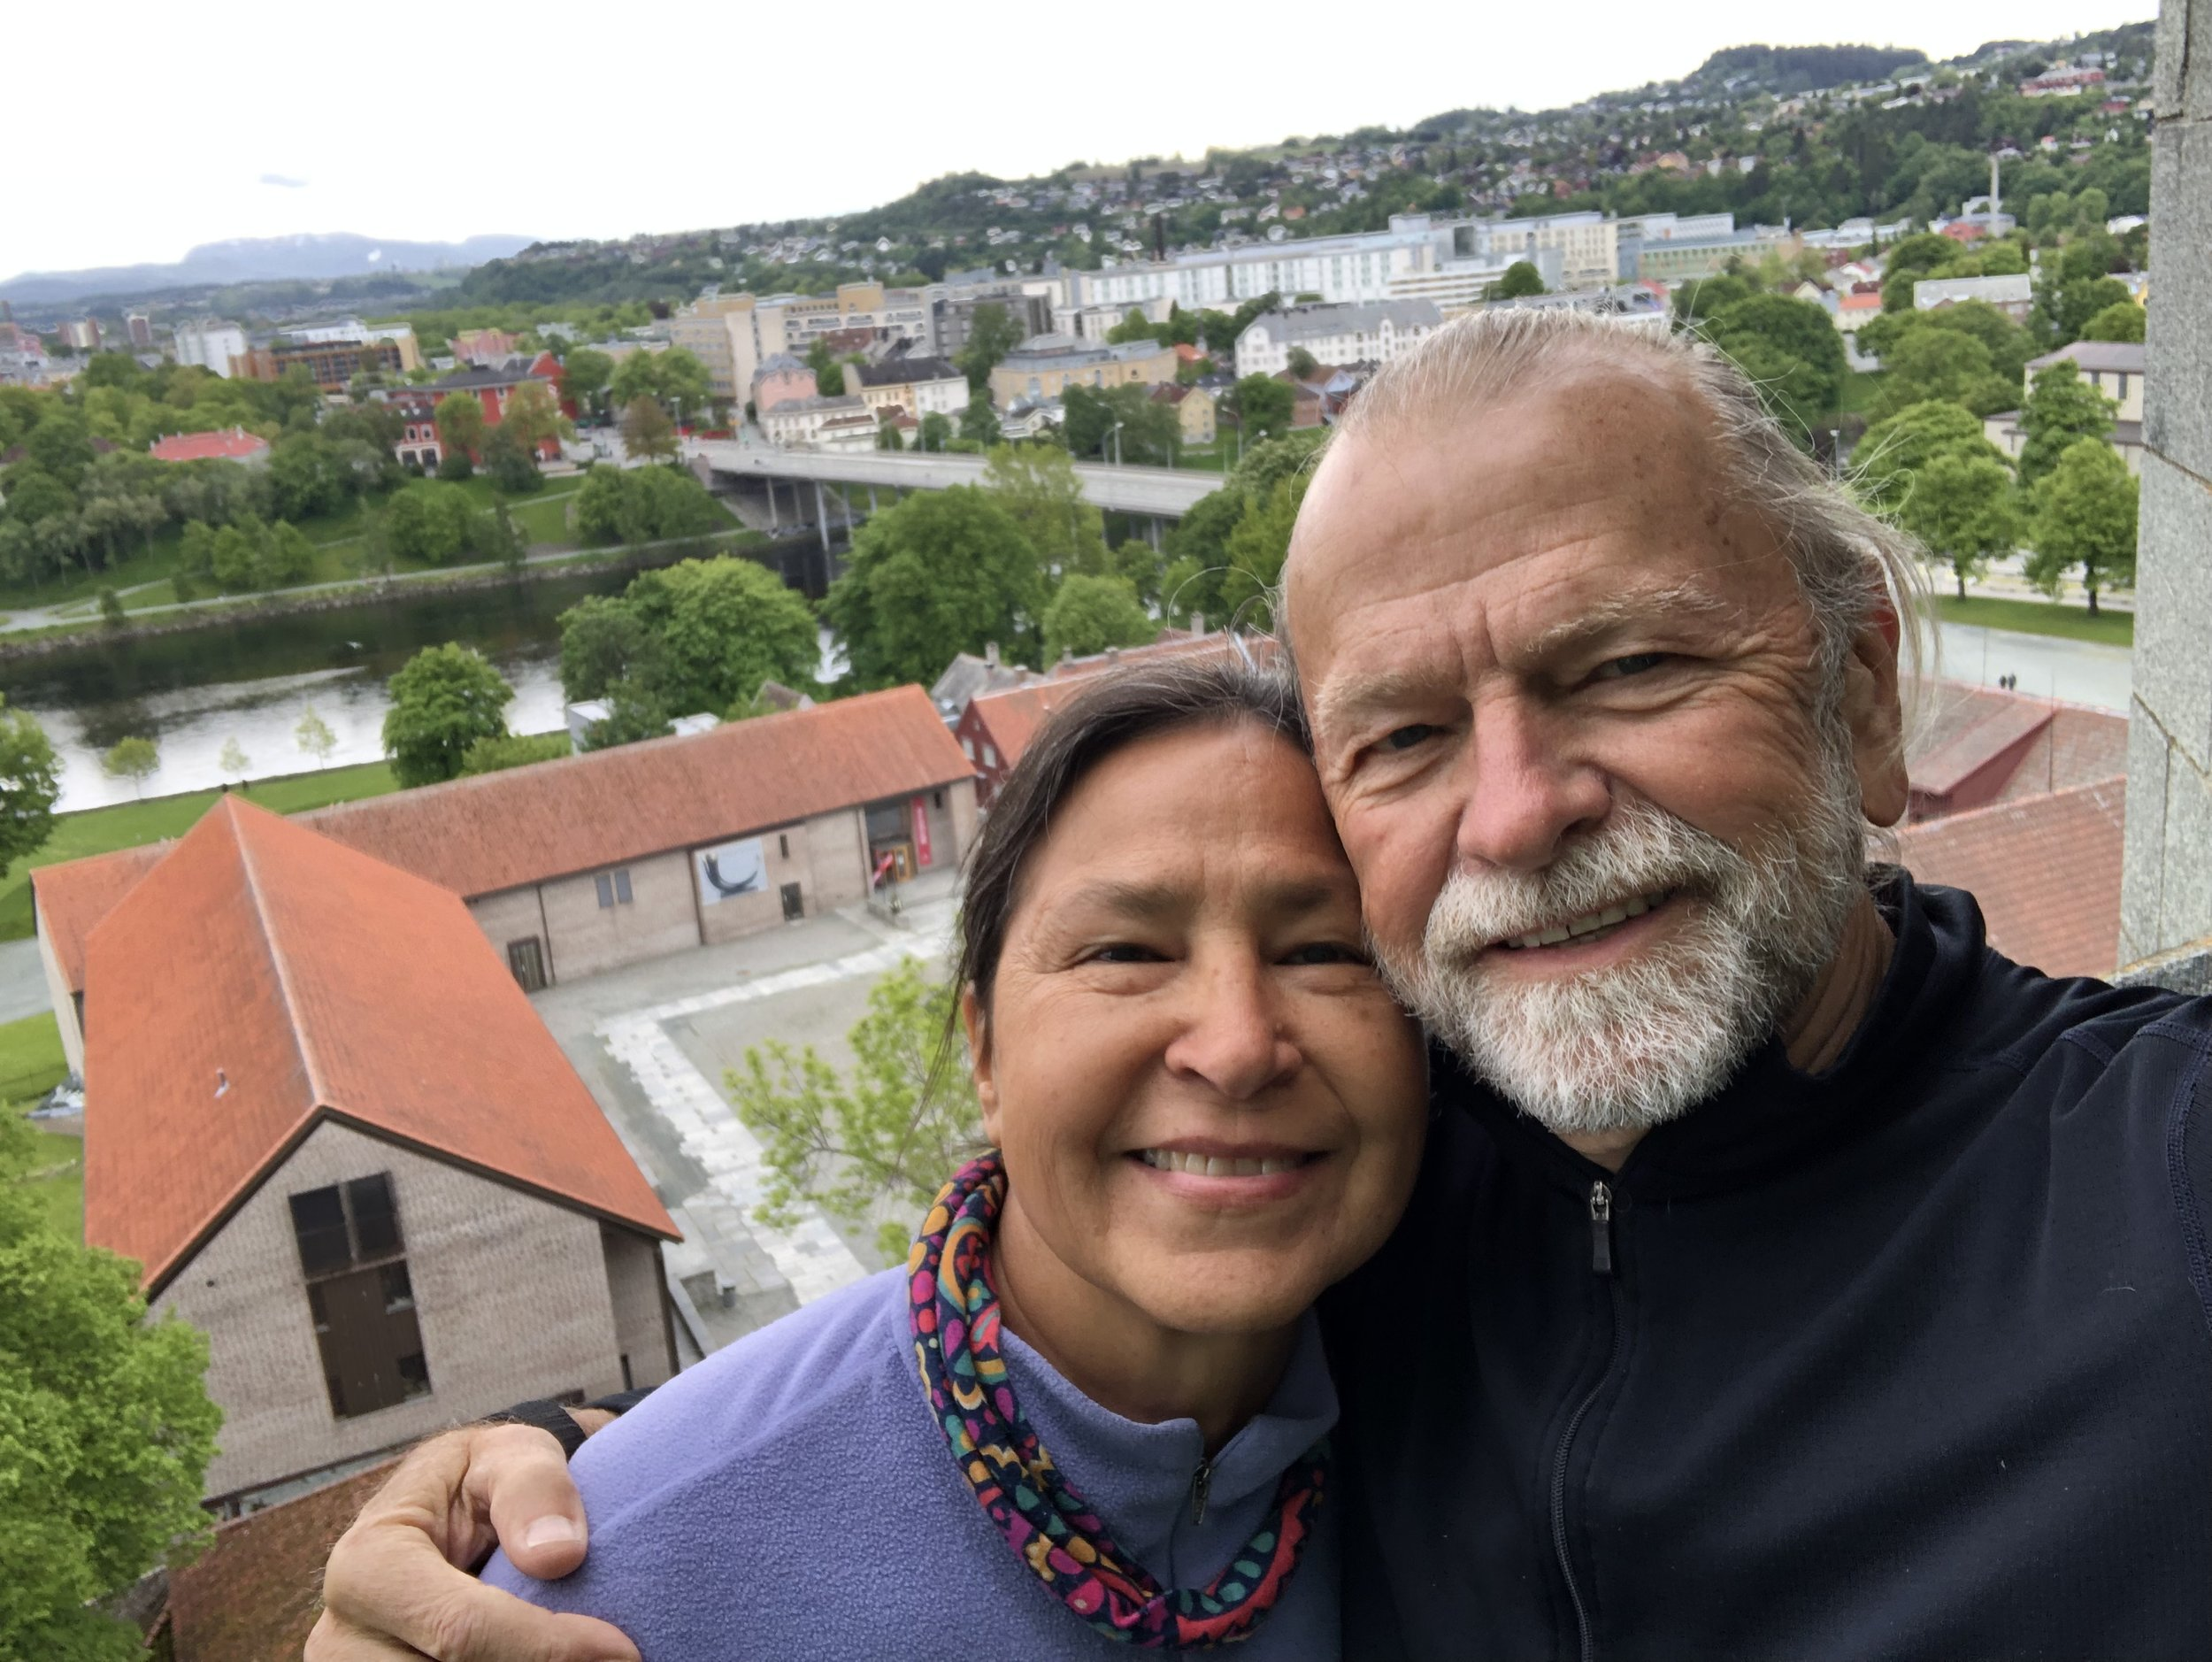 Selfie of Alena and I while on the tour of the church's tower.